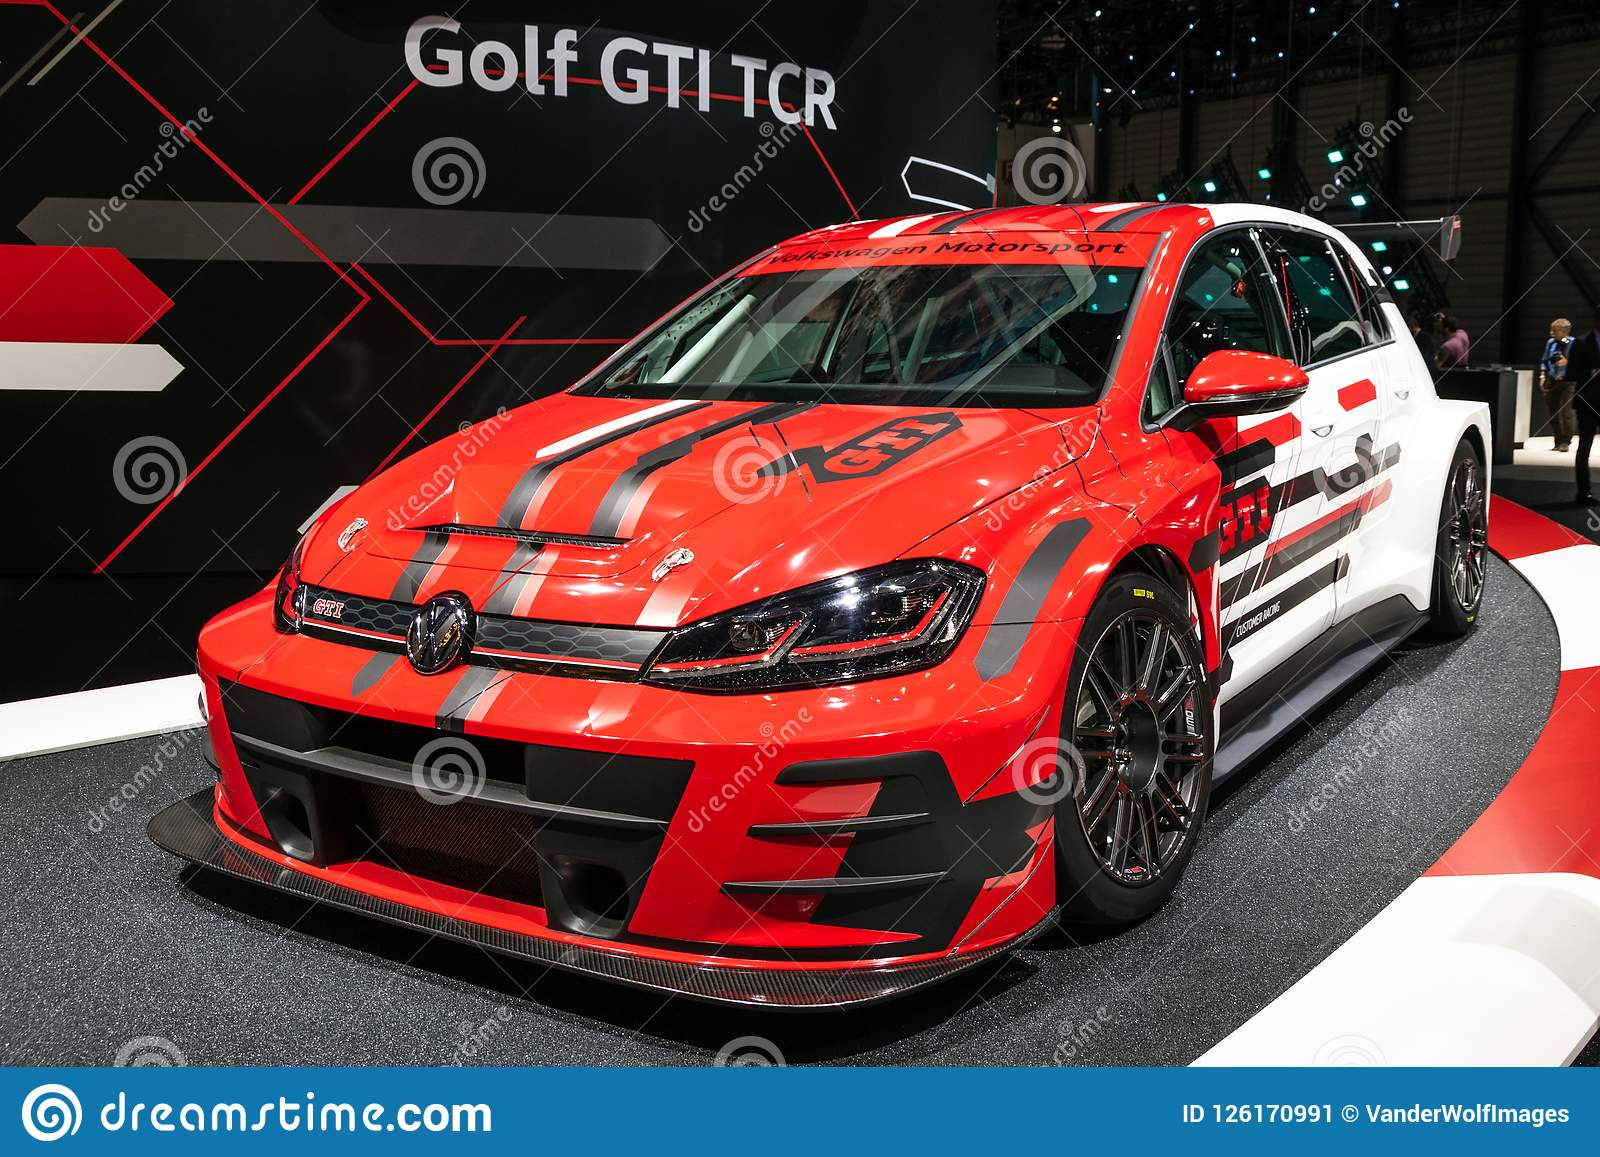 Volkswagen Golf Gti Tcr Sports Car Editorial Photo Image Of Modern White 126170991